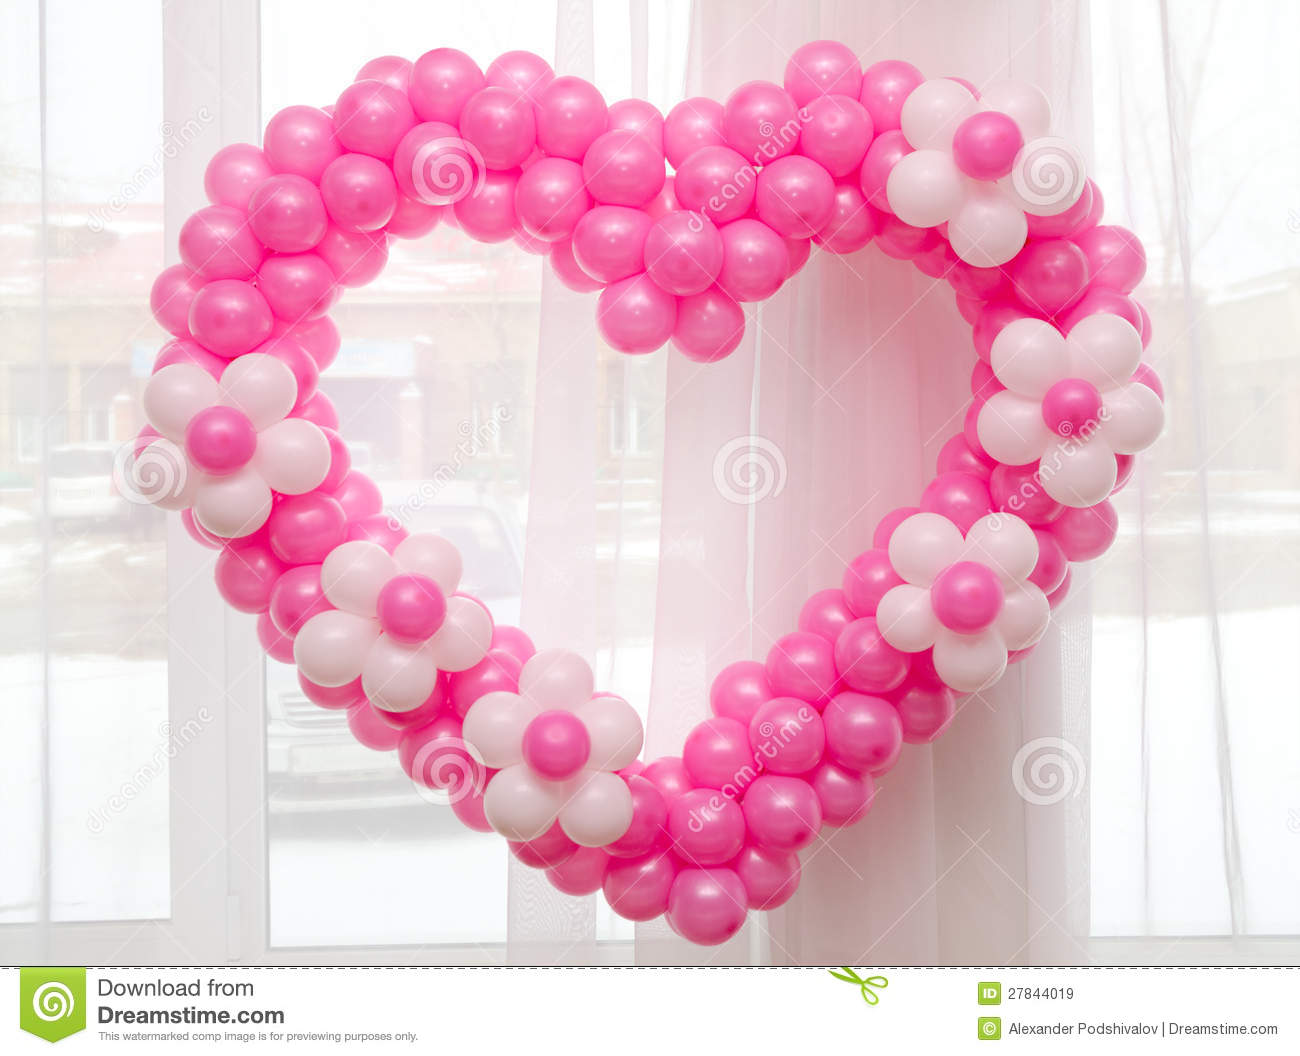 Heart Of Balloons Royalty Free Stock Images - Image: 27844019